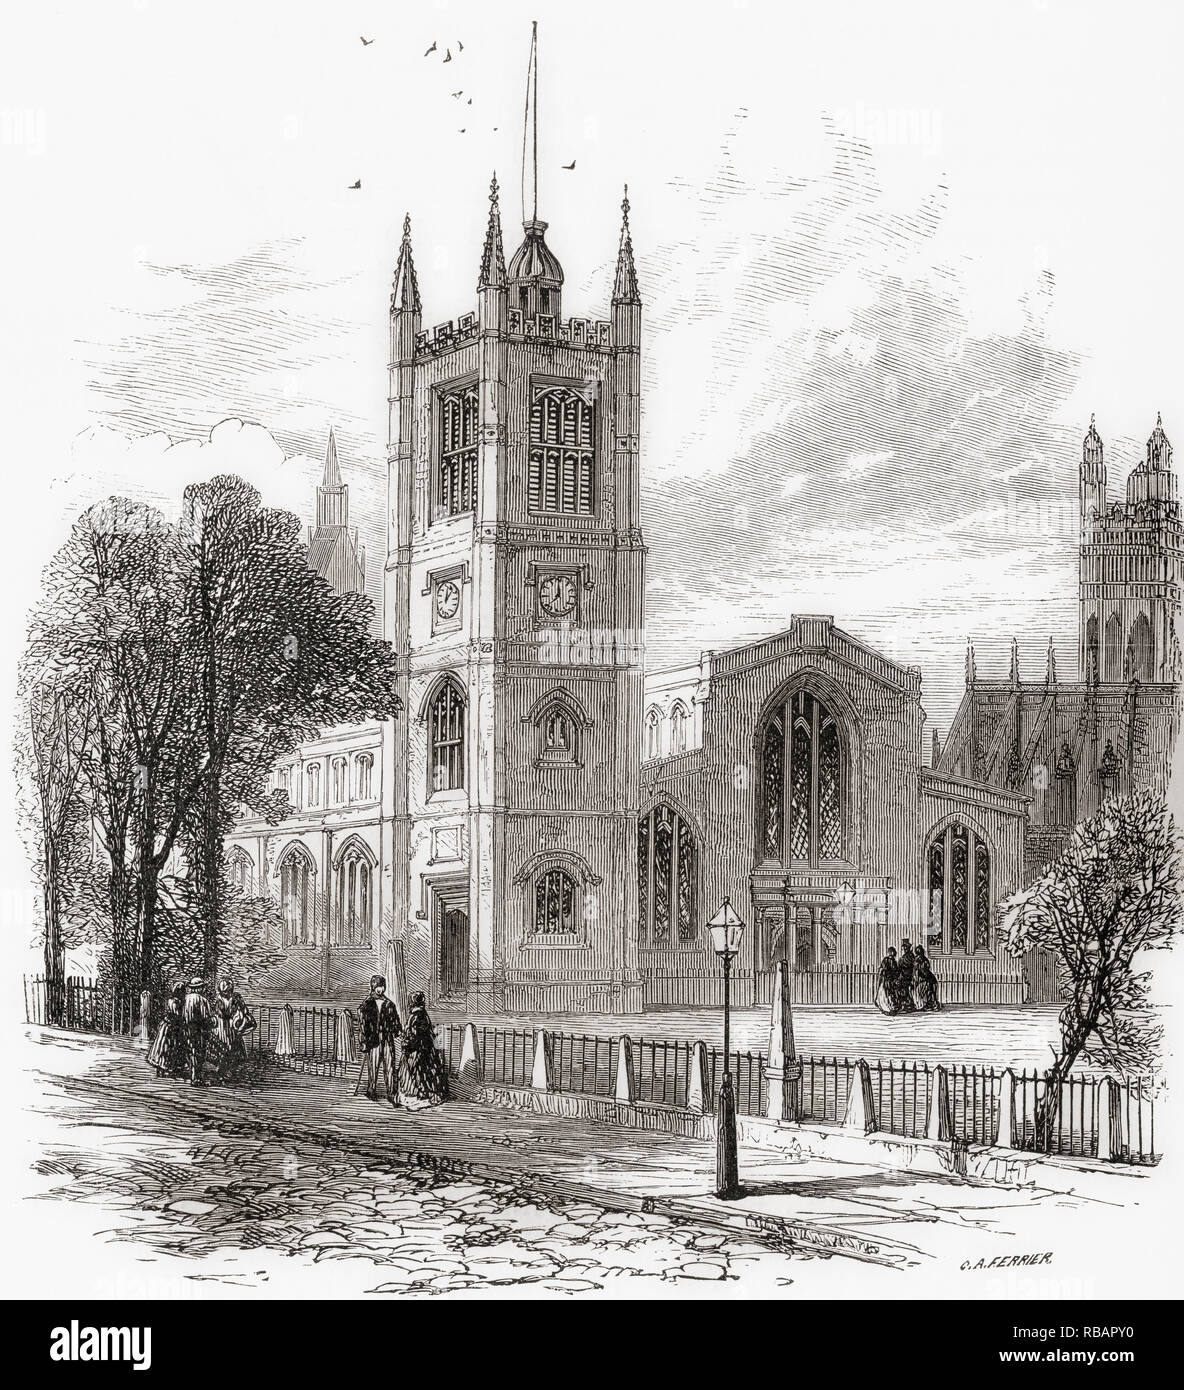 The Church of St Margaret, Westminster Abbey, in the grounds of Westminster Abbey on Parliament Square, London, England, seen here in the 19th century.  From London Pictures, published 1890 Stock Photo